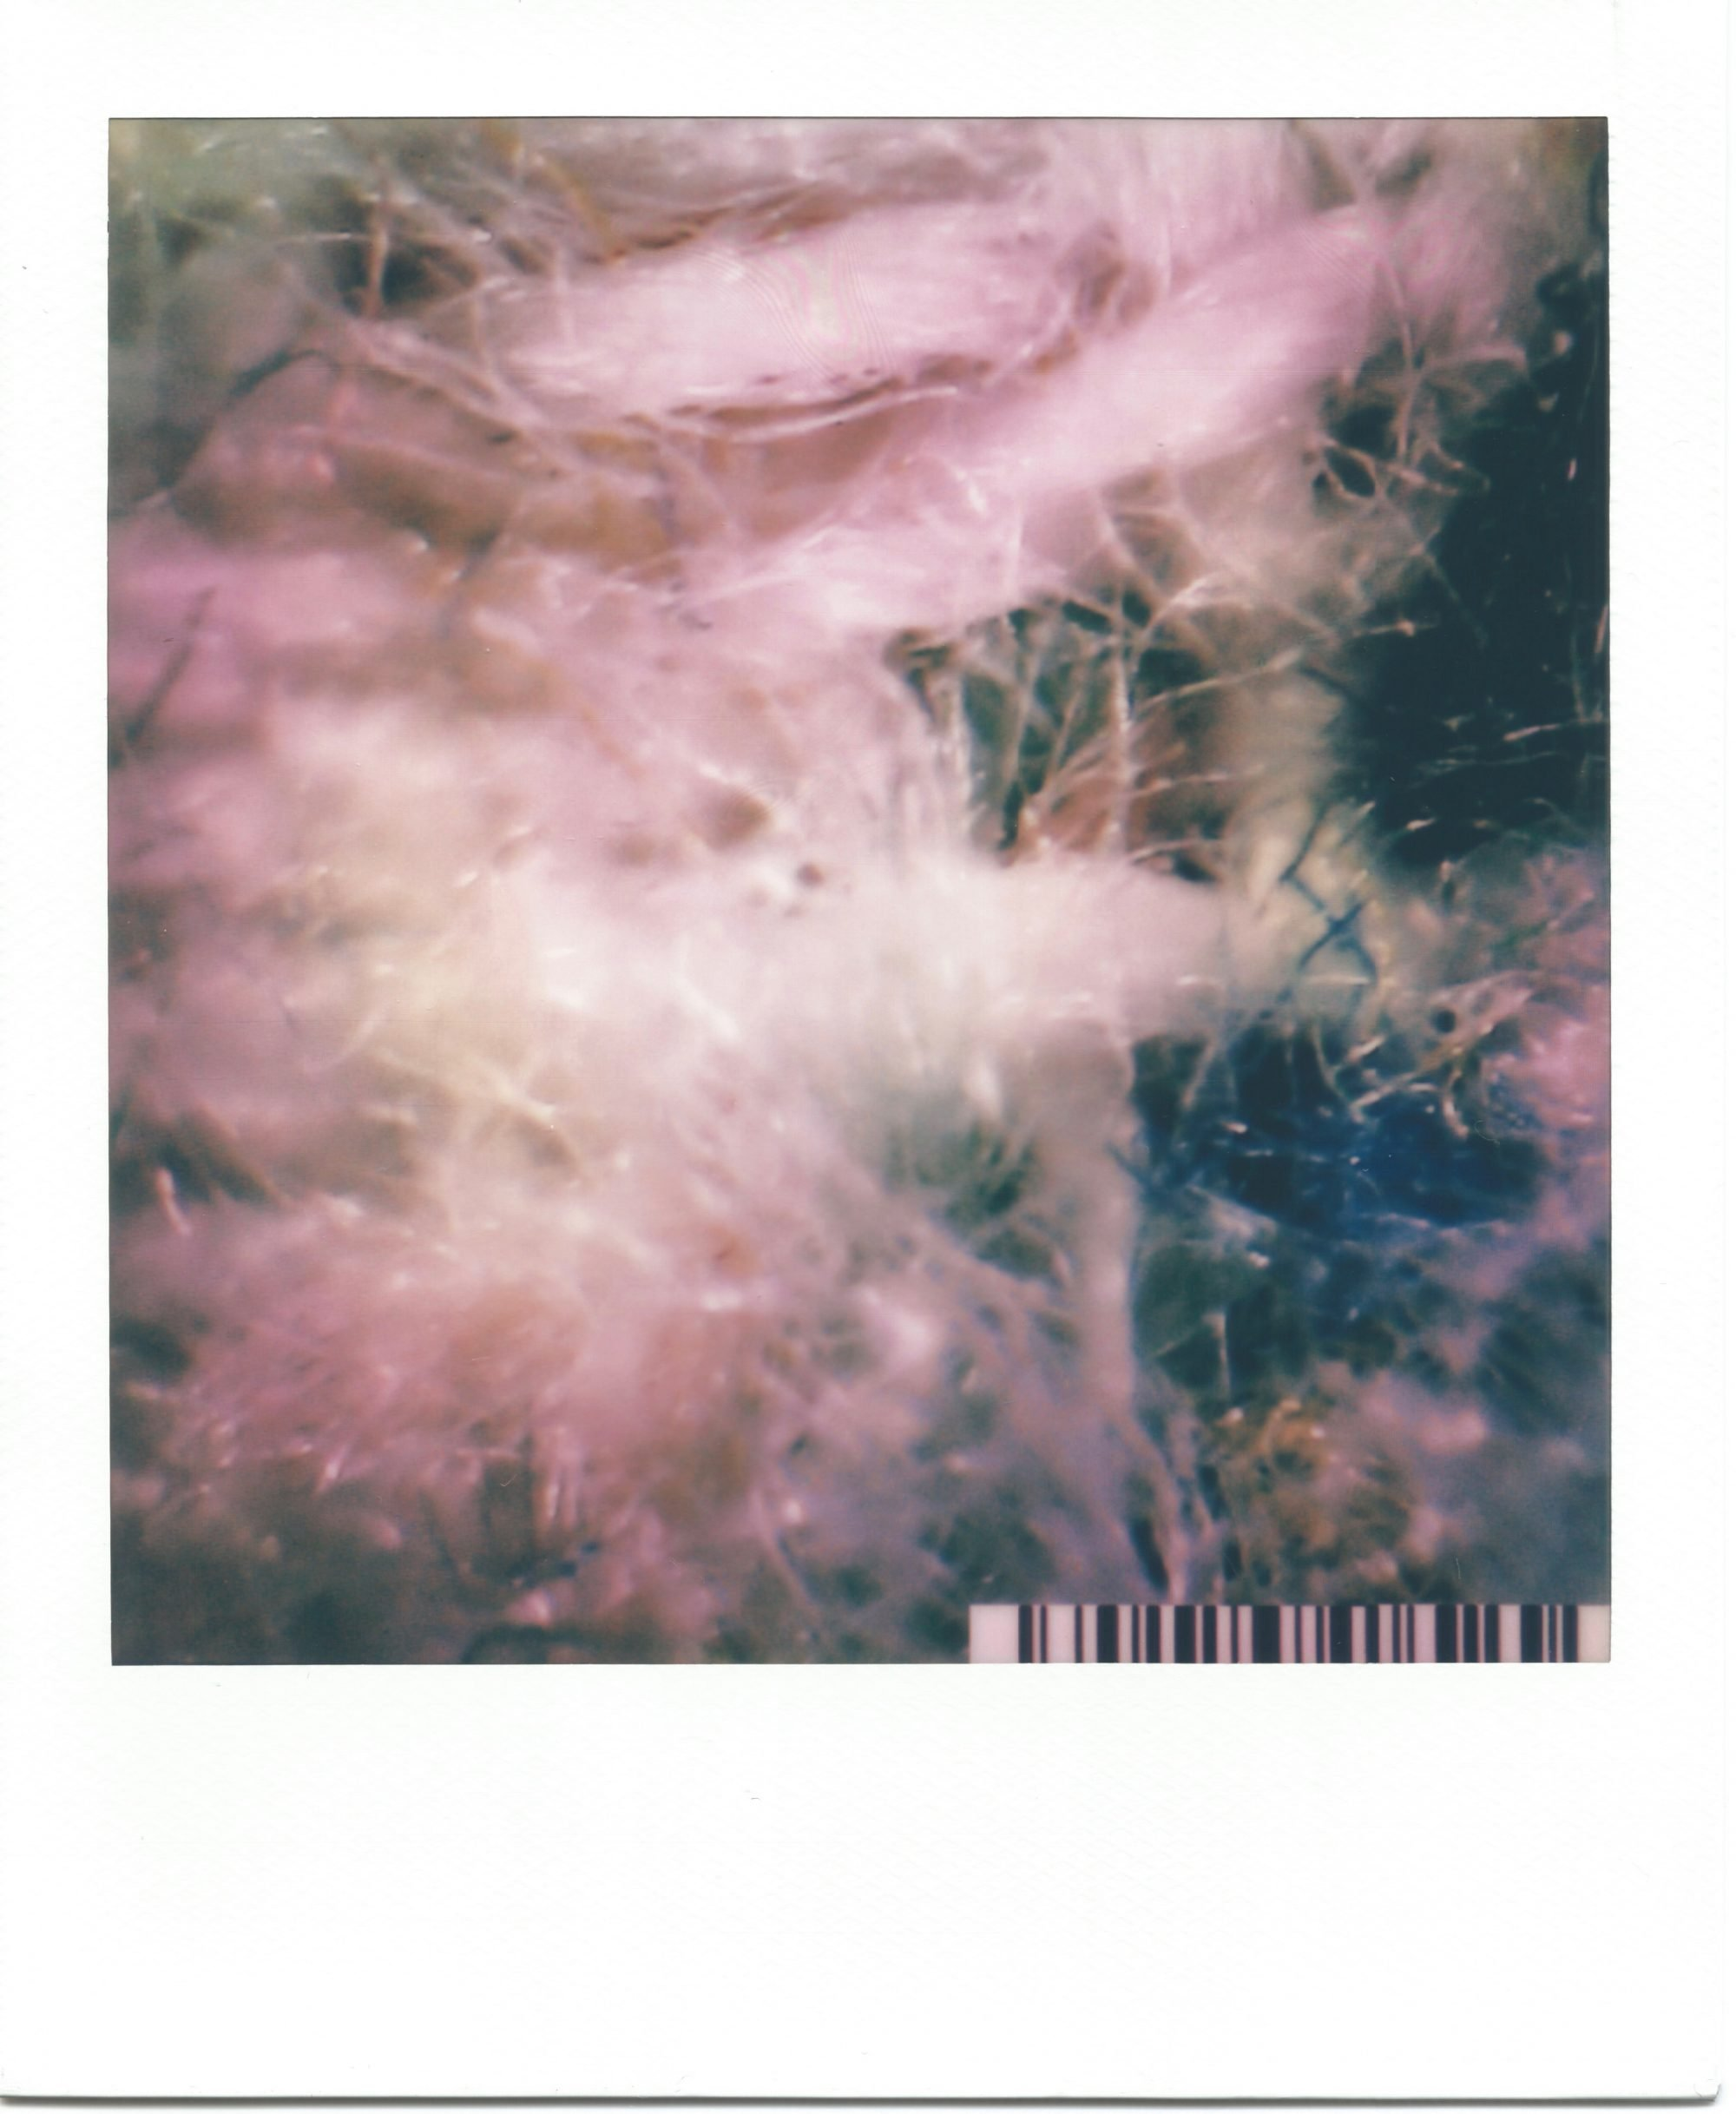 In a white polaroid print frame, is an image of highly magnified textile fibres. Lilac fibres fill the image, with a tight weave near the top of the frame. Along the right hand side, deep blue and black fibres mix with the lilac weave. A small barcode sits in the bottom right corner.